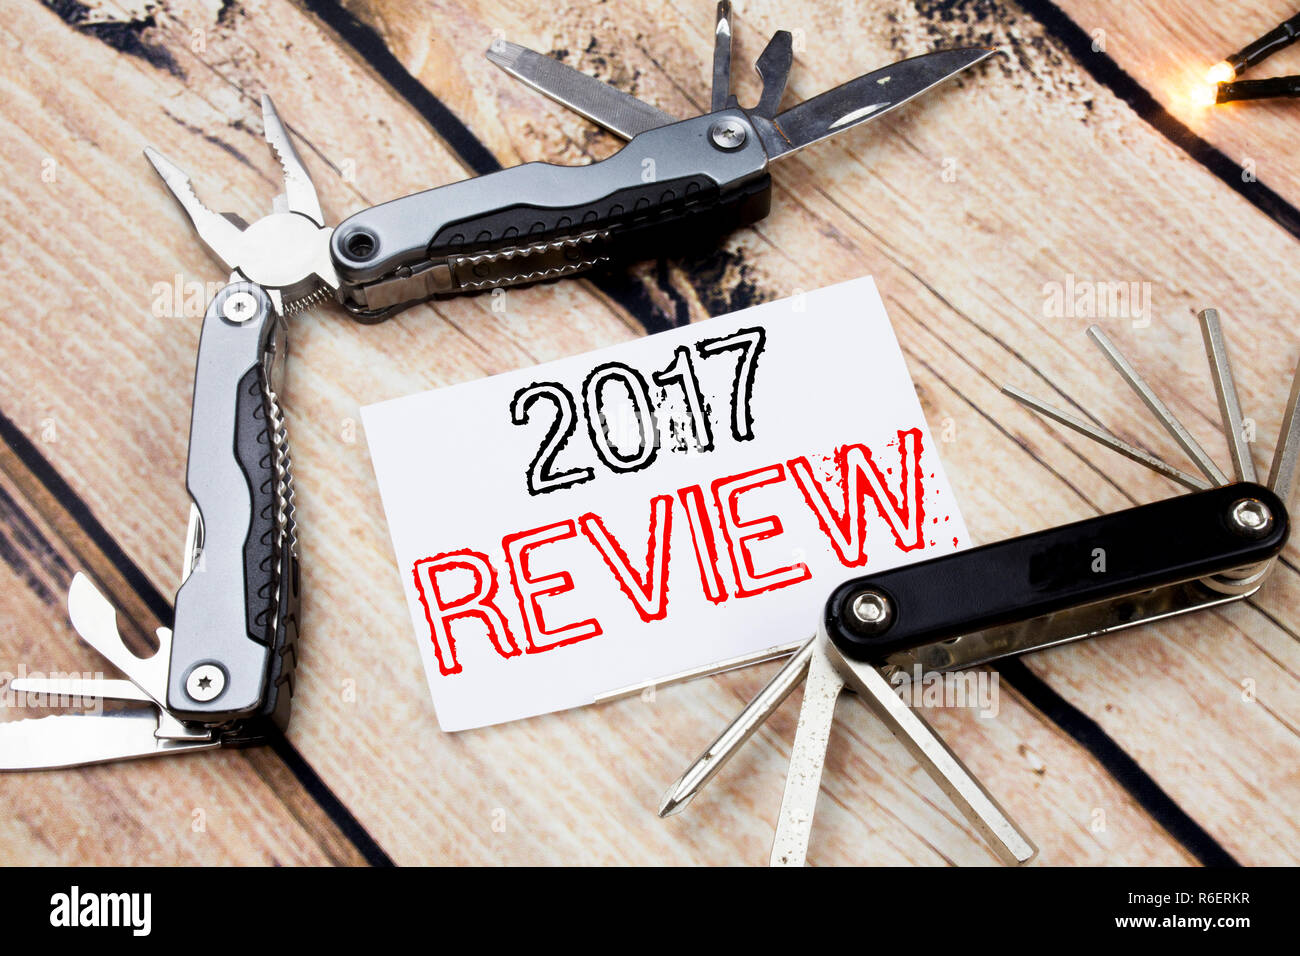 Conceptual hand writing text caption inspiration showing 2017 Review. Business concept for Annual Summary Report Written on sticky note wooden background with pocket knife - Stock Image